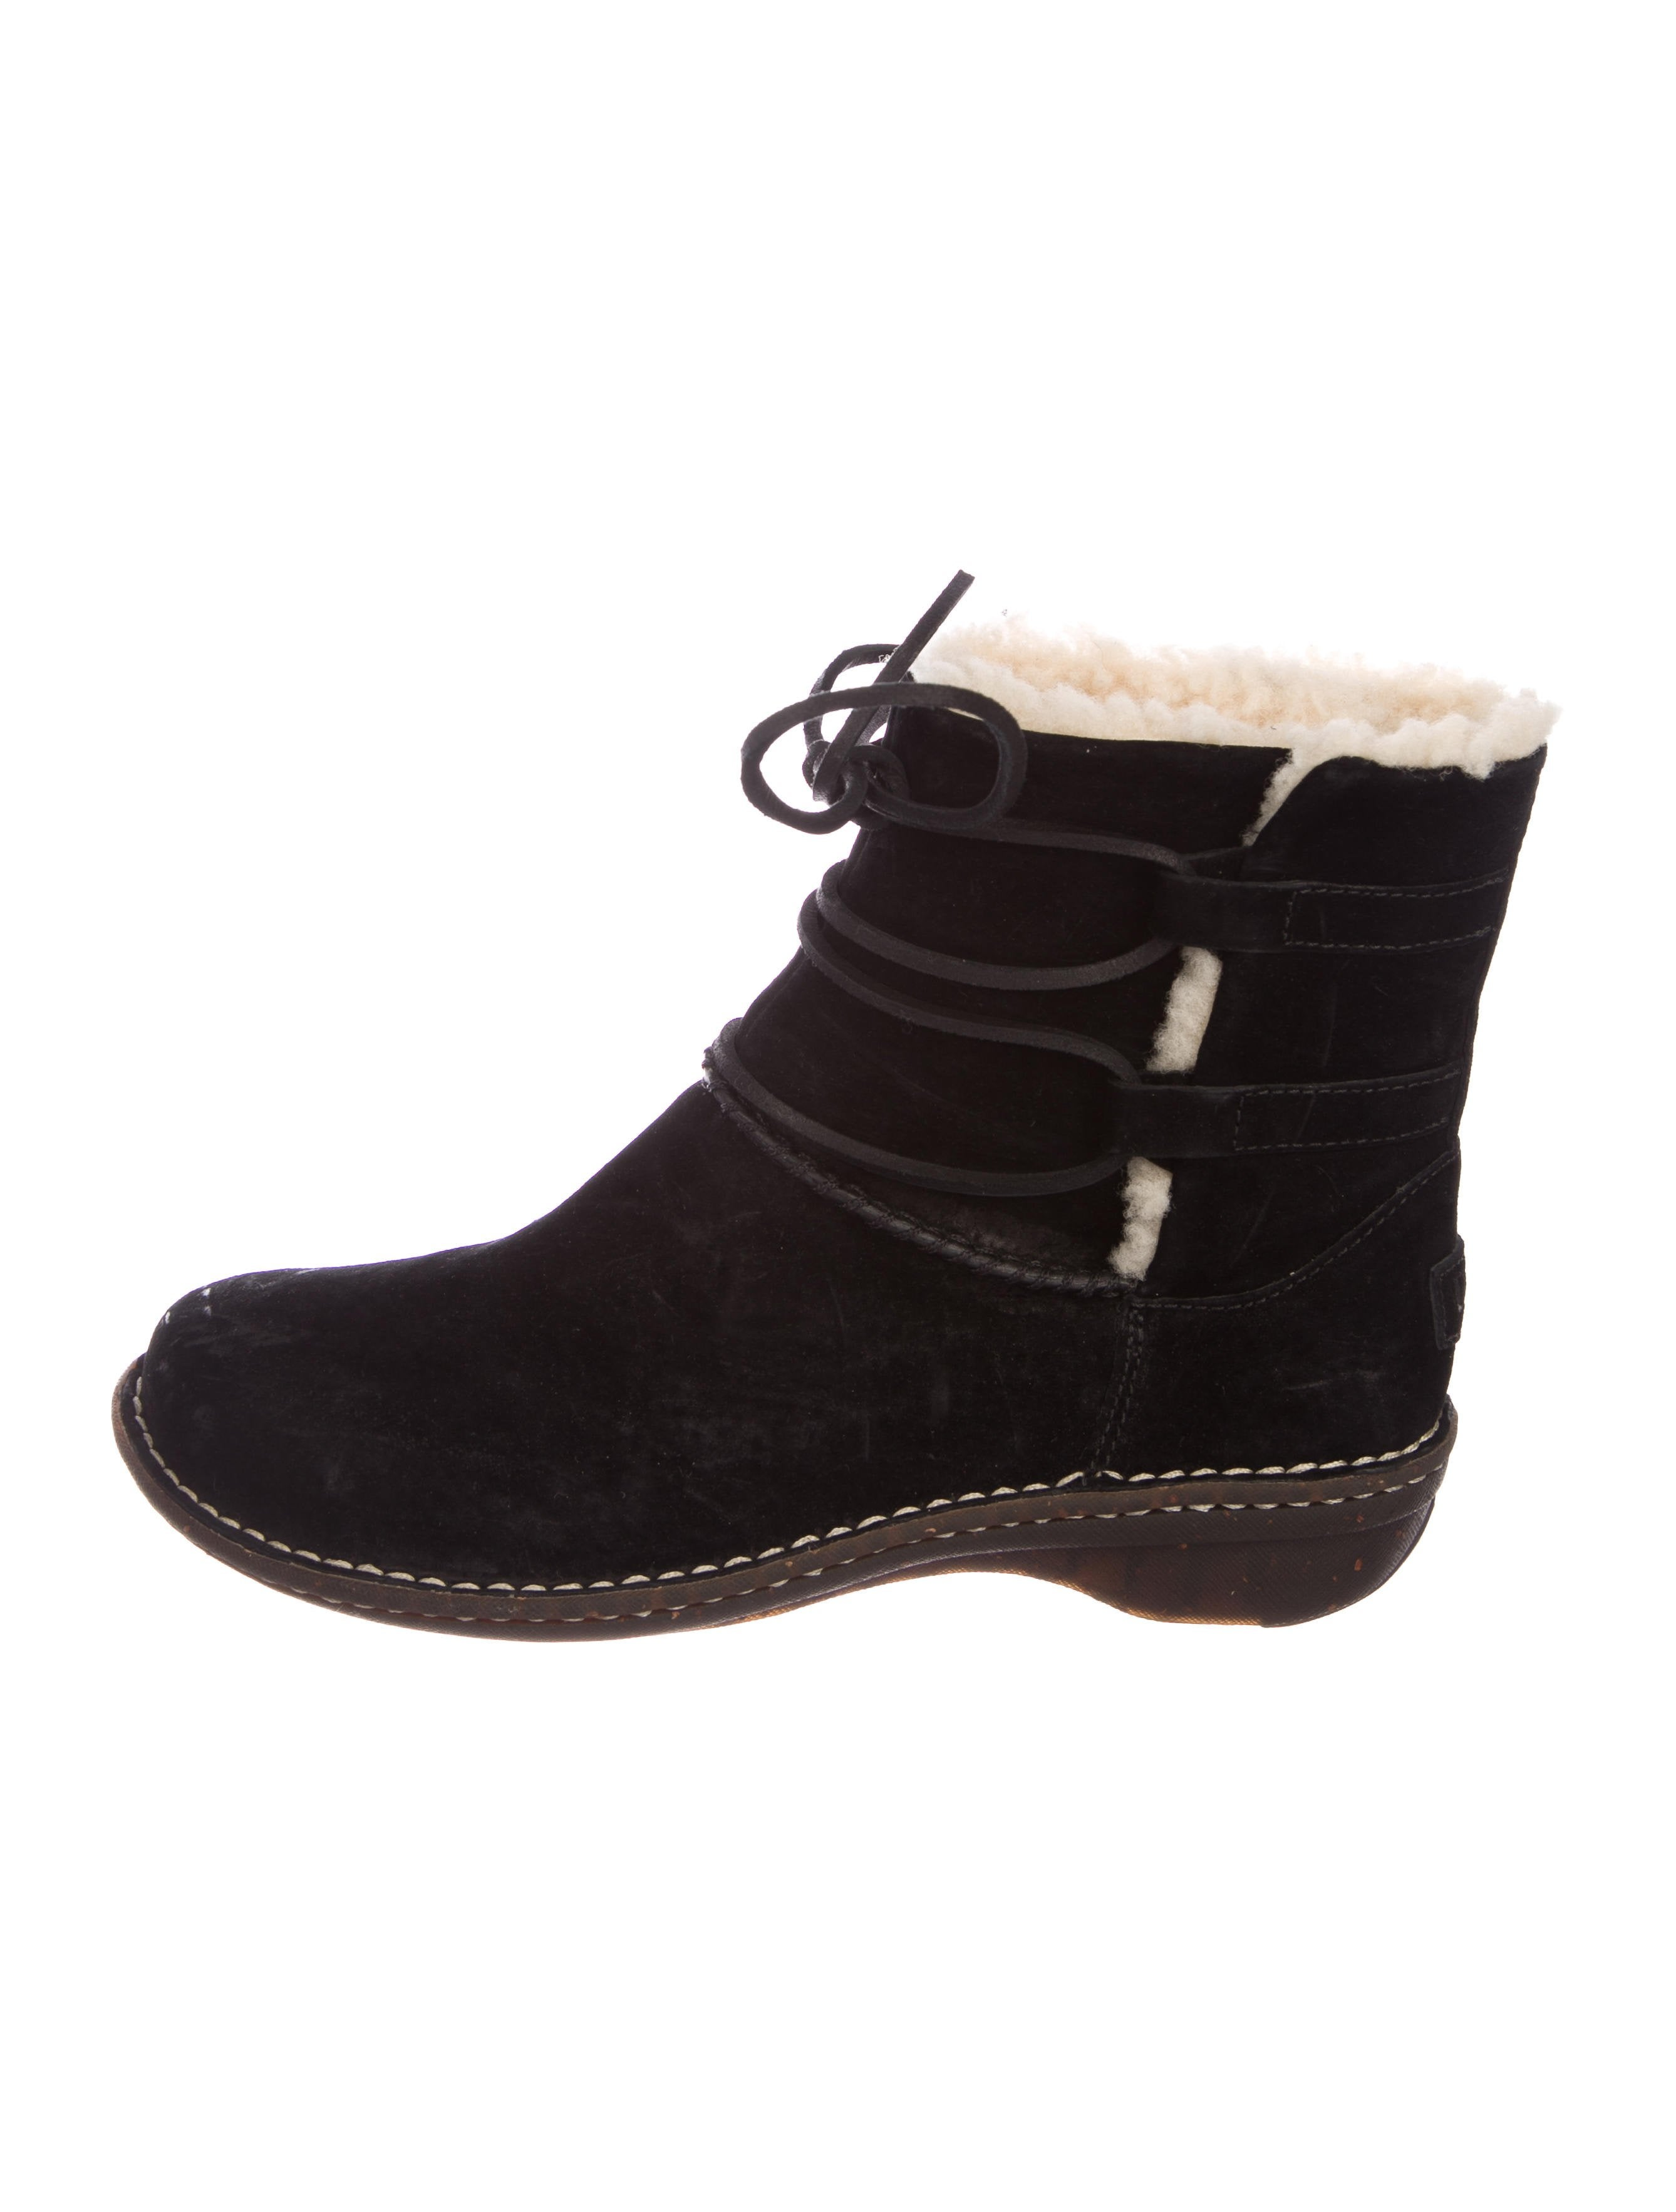 discount visa payment view for sale UGG Australia Caspian Round-Toe Ankle Boots buy cheap get to buy fashionable collections online hqQCvSW